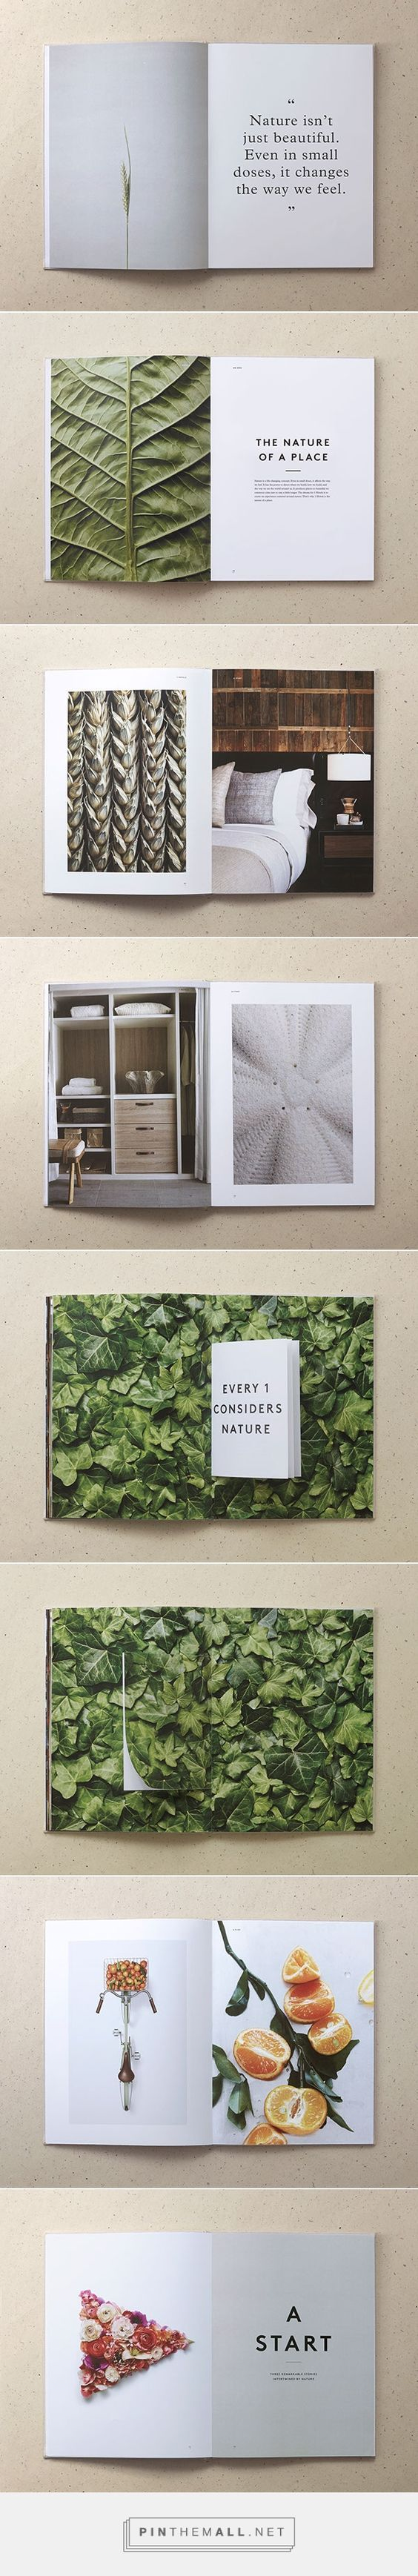 Love the big bold photos + texture ///// 1 Hotels by Jules Tardy & Christian Cervantes #print #design #layout: